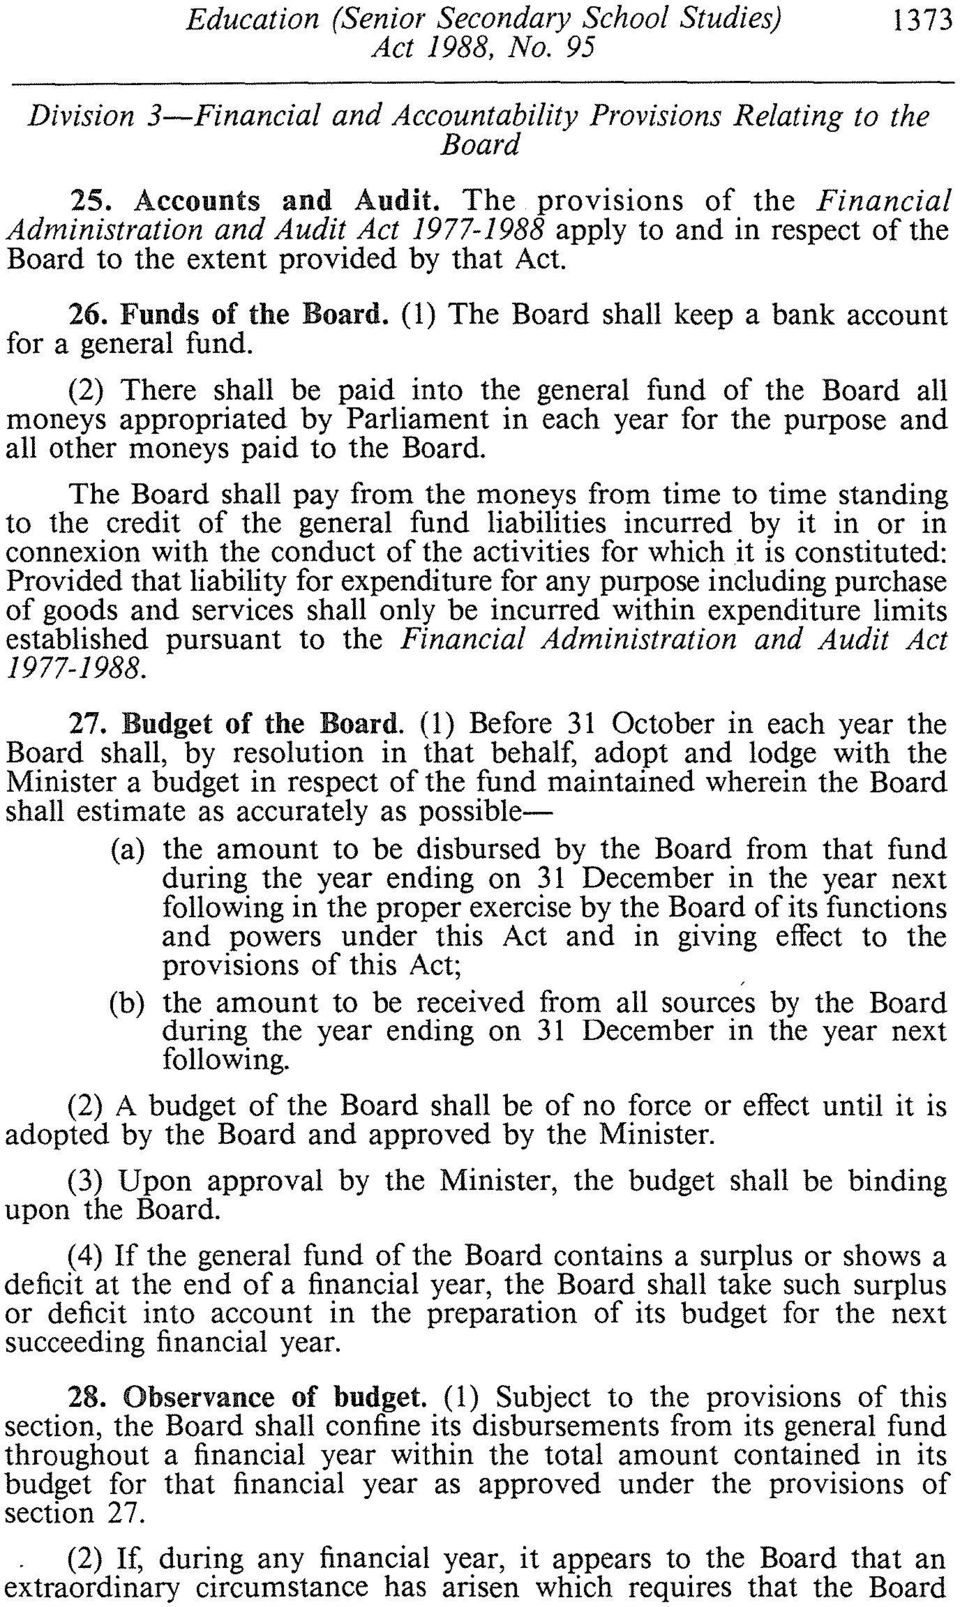 (1) The Board shall keep a bank account for a general fund.